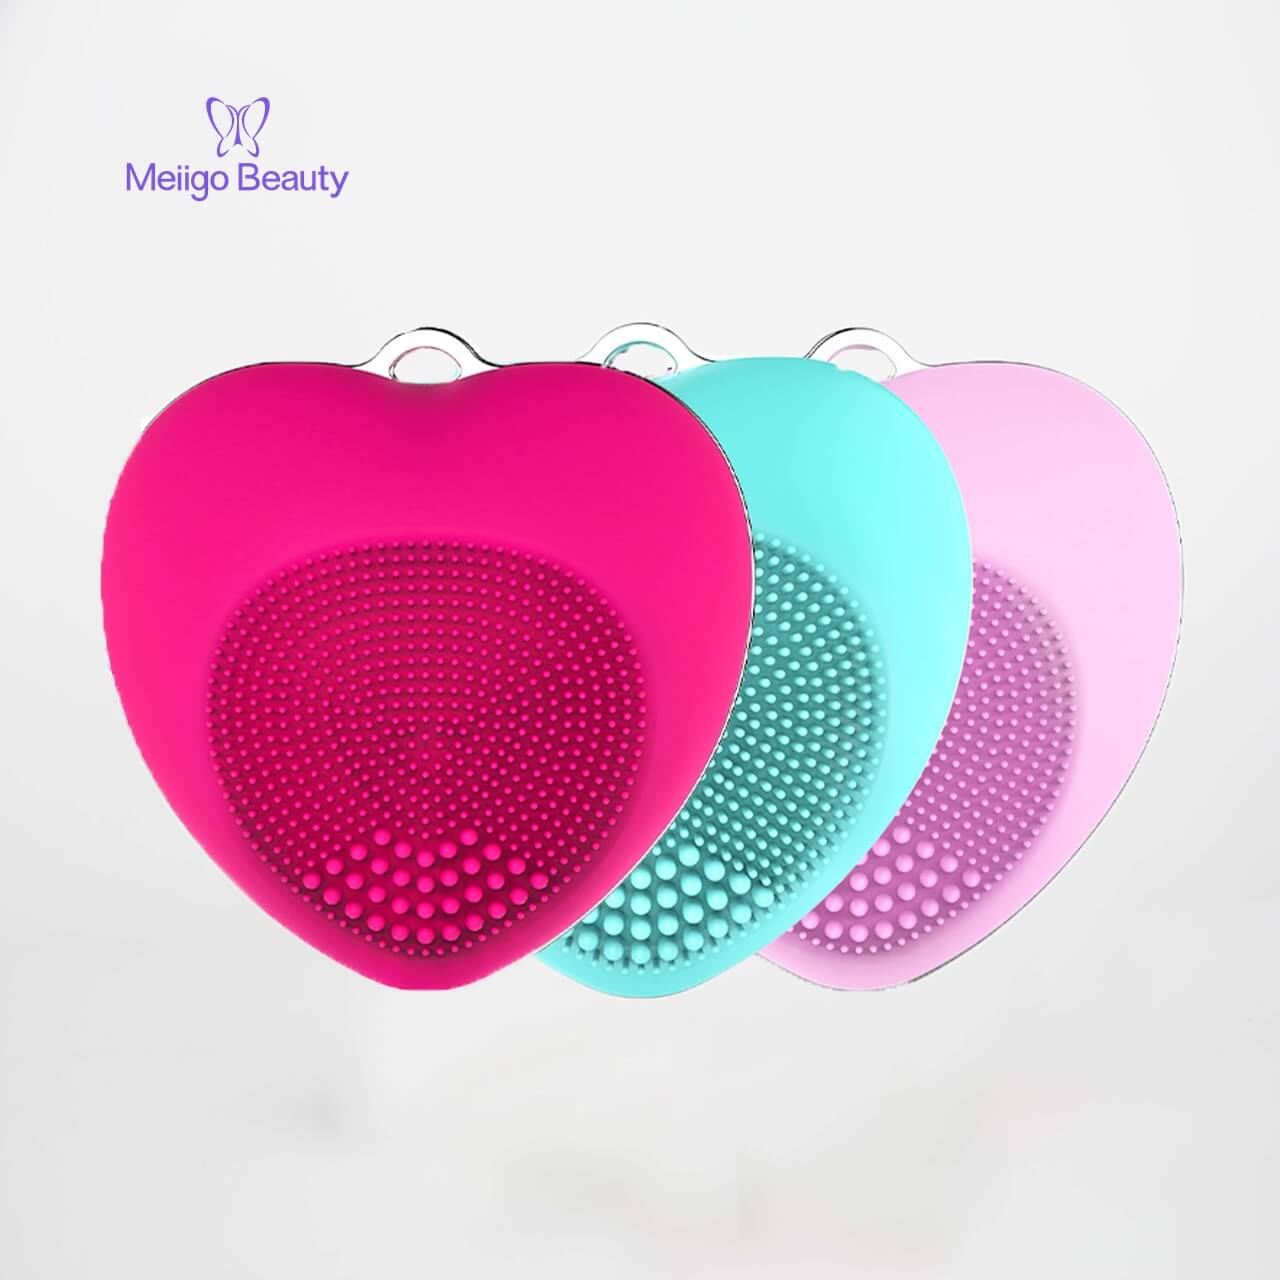 Meiigo beauty heart shape facial brush BR 002 5 - Facial cleansing brush mini silicone sonic face massager  BR-002